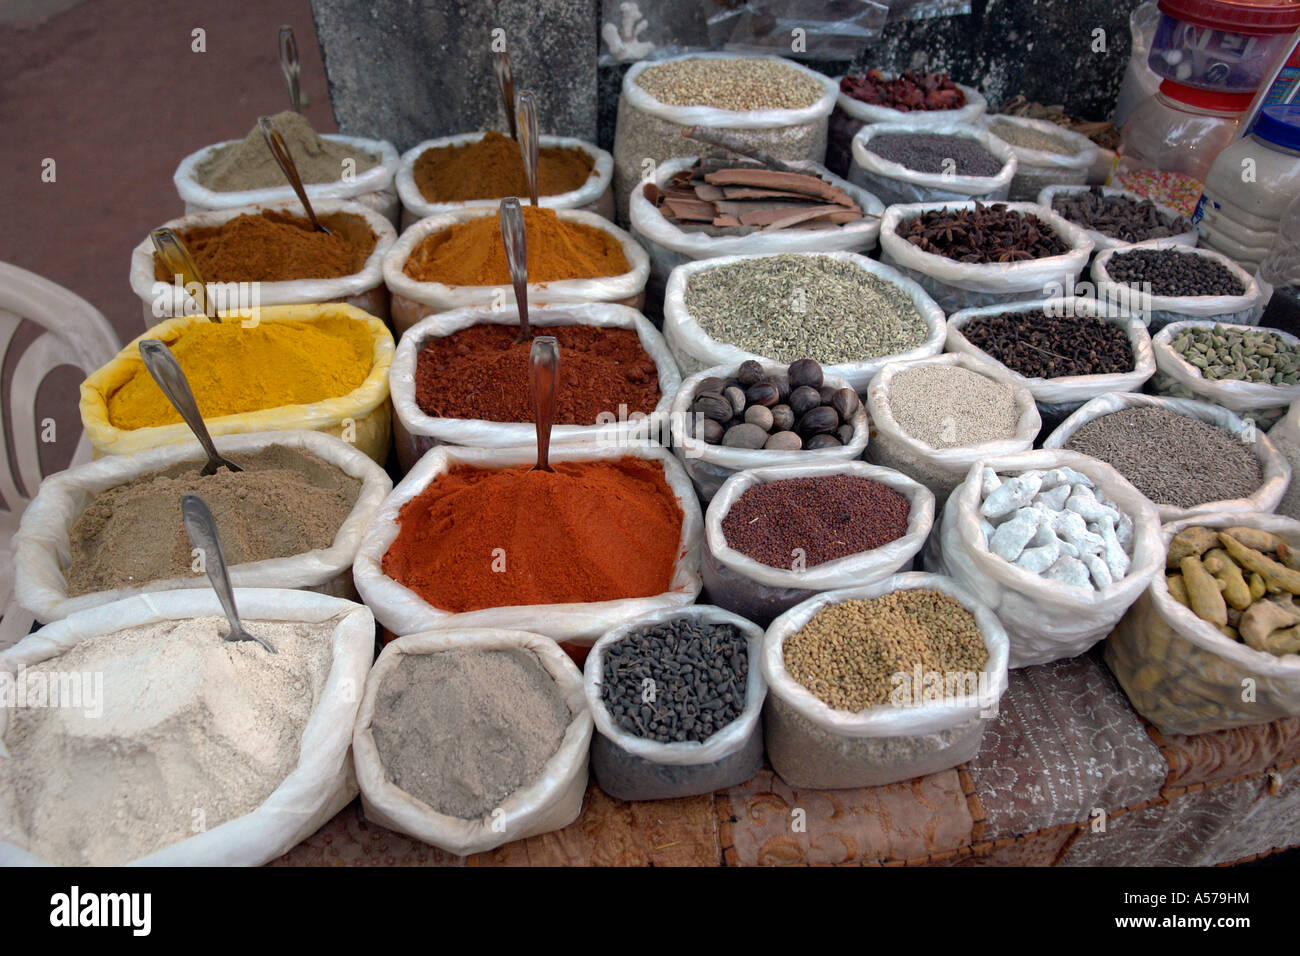 Painet jc3067 india spices sale palolem goa economy country developing nation economically developed culture emerging Stock Photo